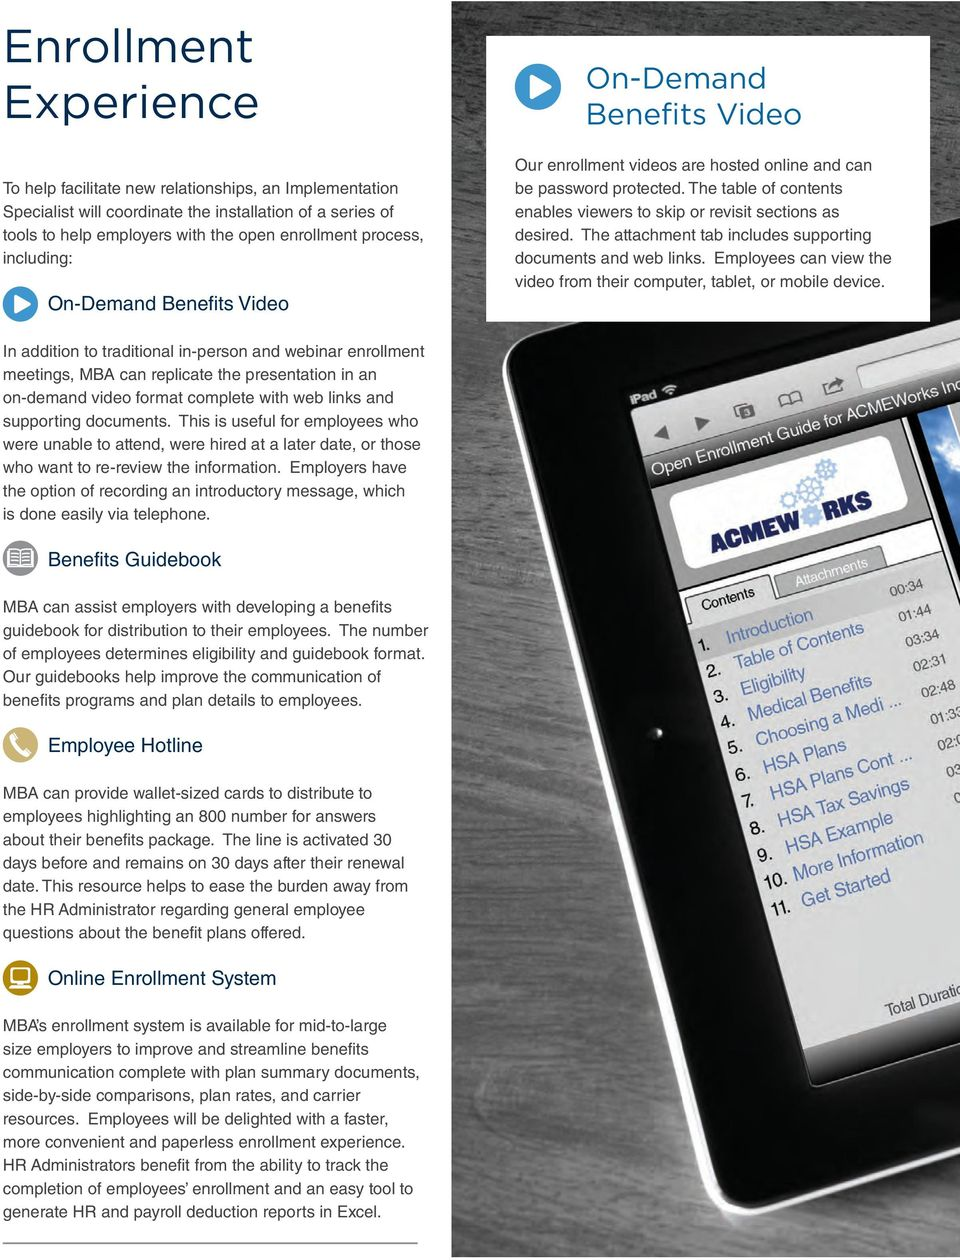 The table of contents enables viewers to skip or revisit sections as desired. The attachment tab includes supporting documents and web links.